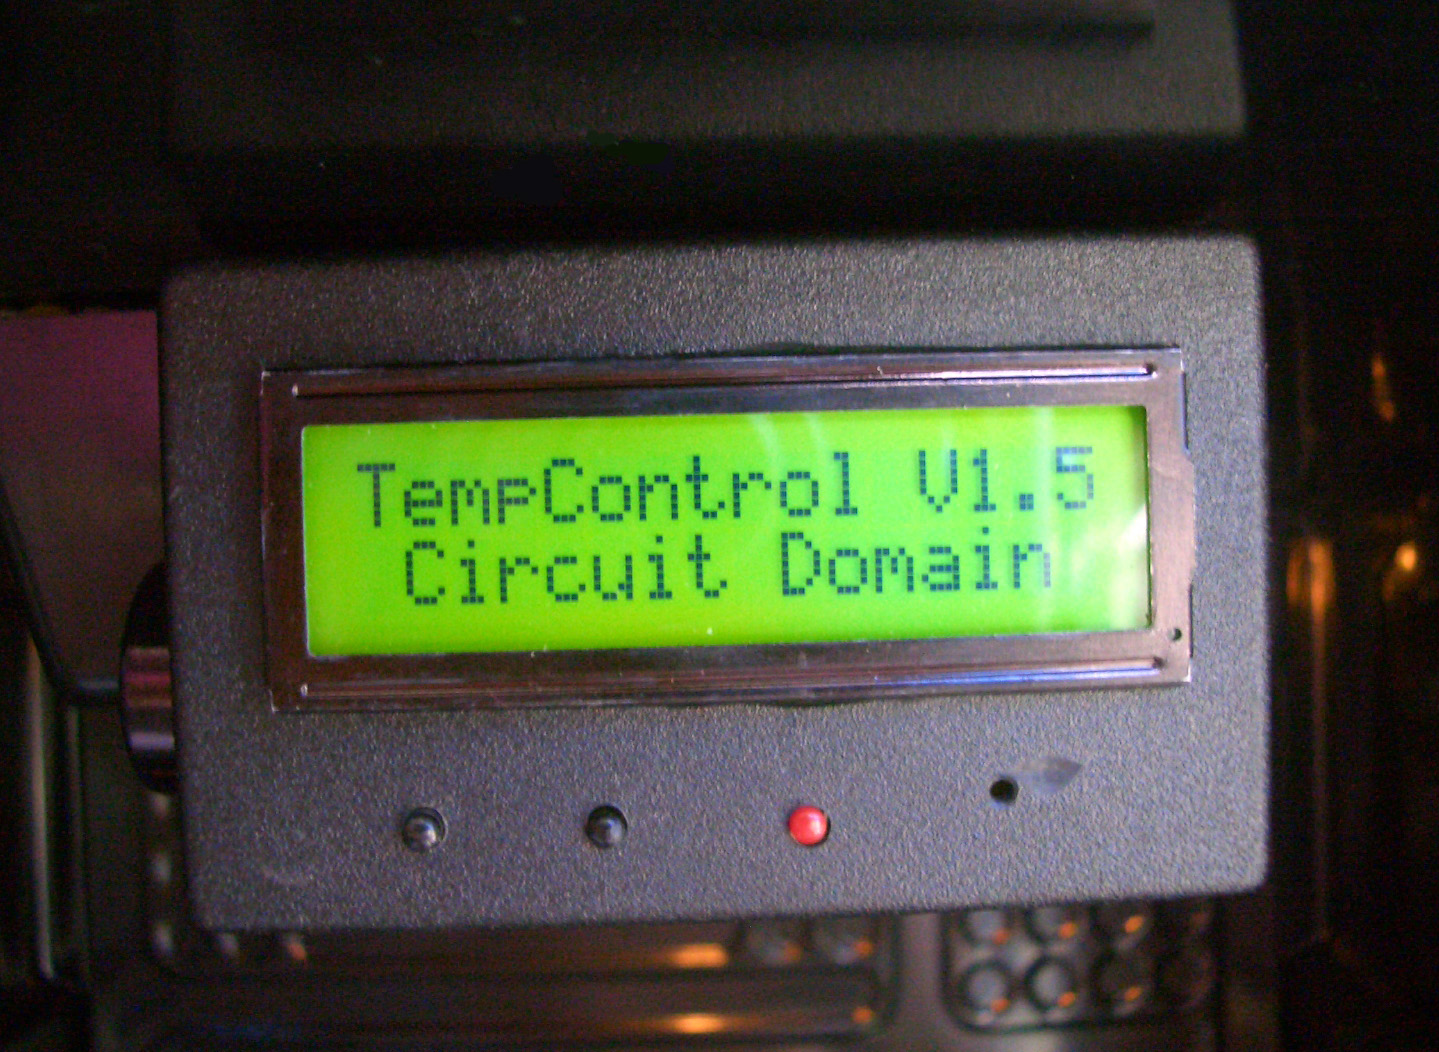 Circuit Domain Projects Microcontroller Programmer Get Pictures I Decided To Base This Project On Pic16f88 As It Is Common Cheap Has Enough O Lines For The Design And An Inbuilt A D Converter